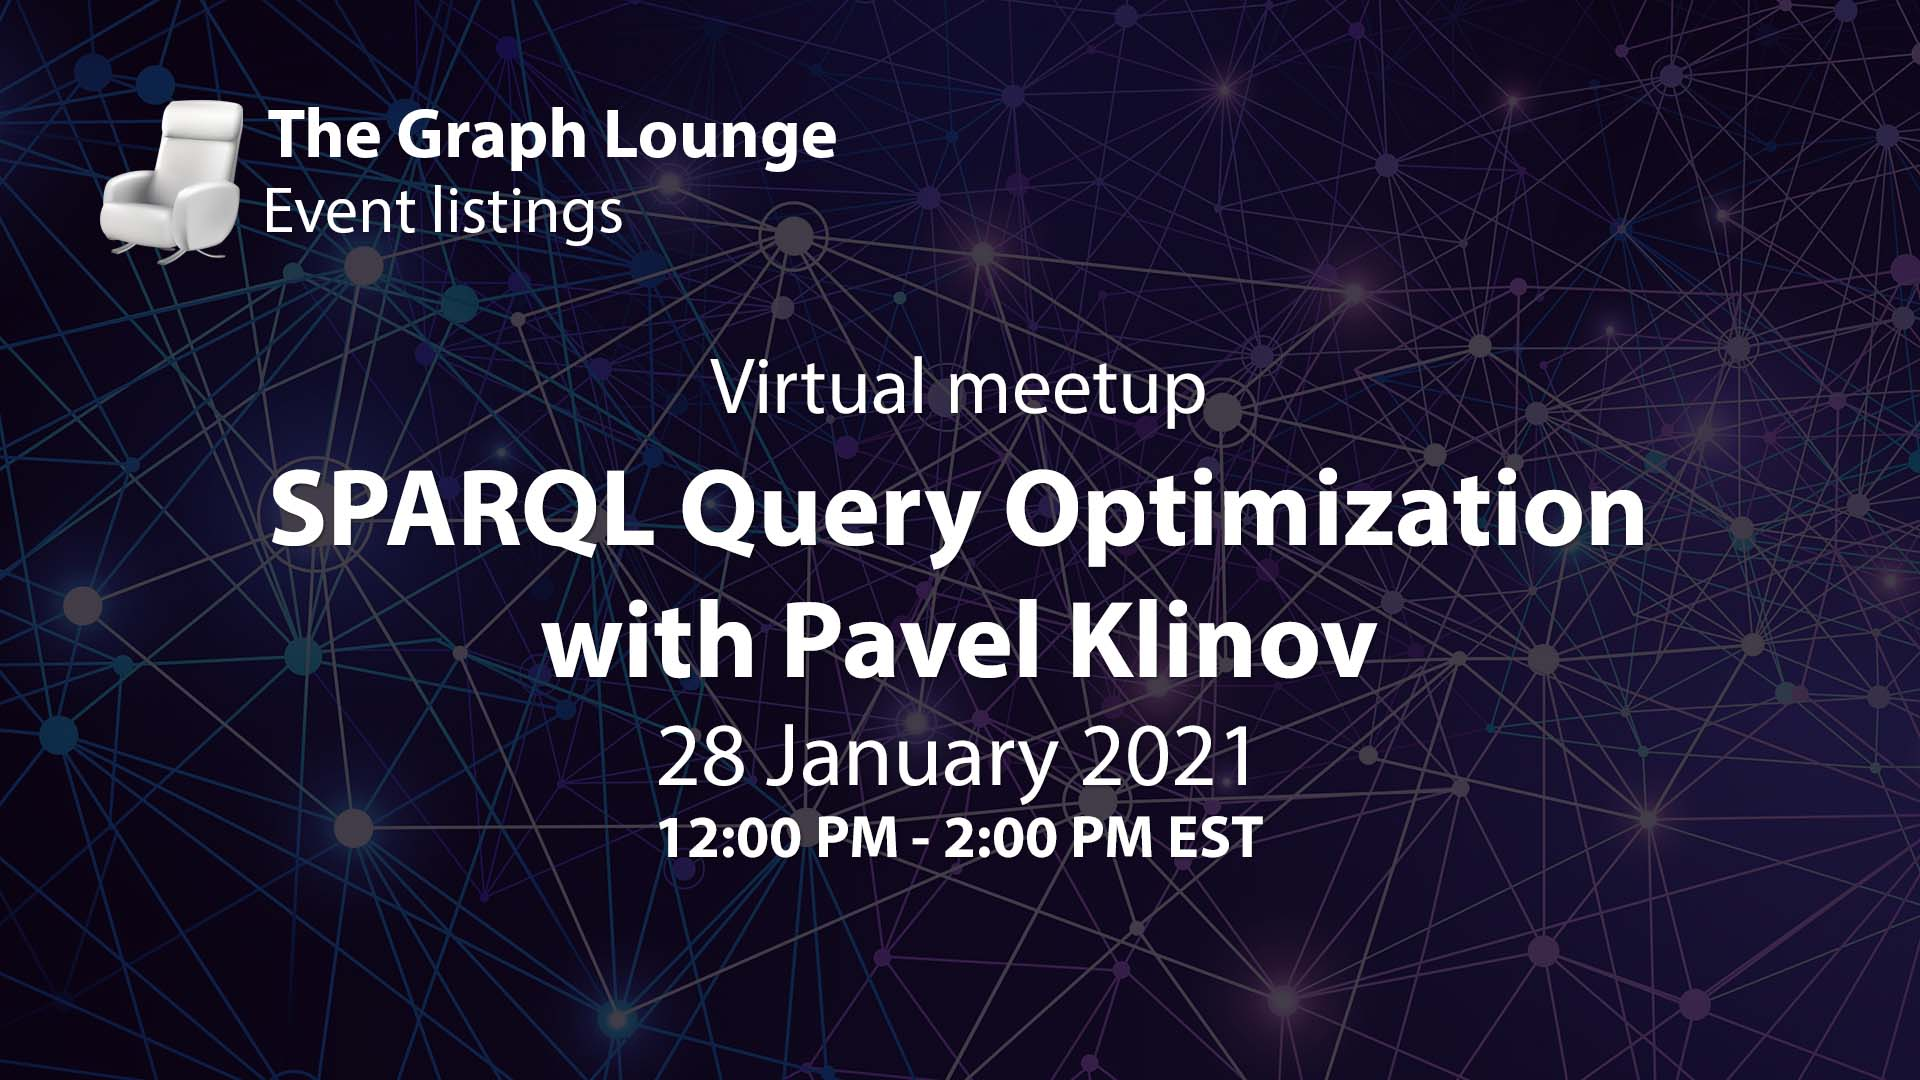 SPARQL Query Optimization with Pavel Klinov